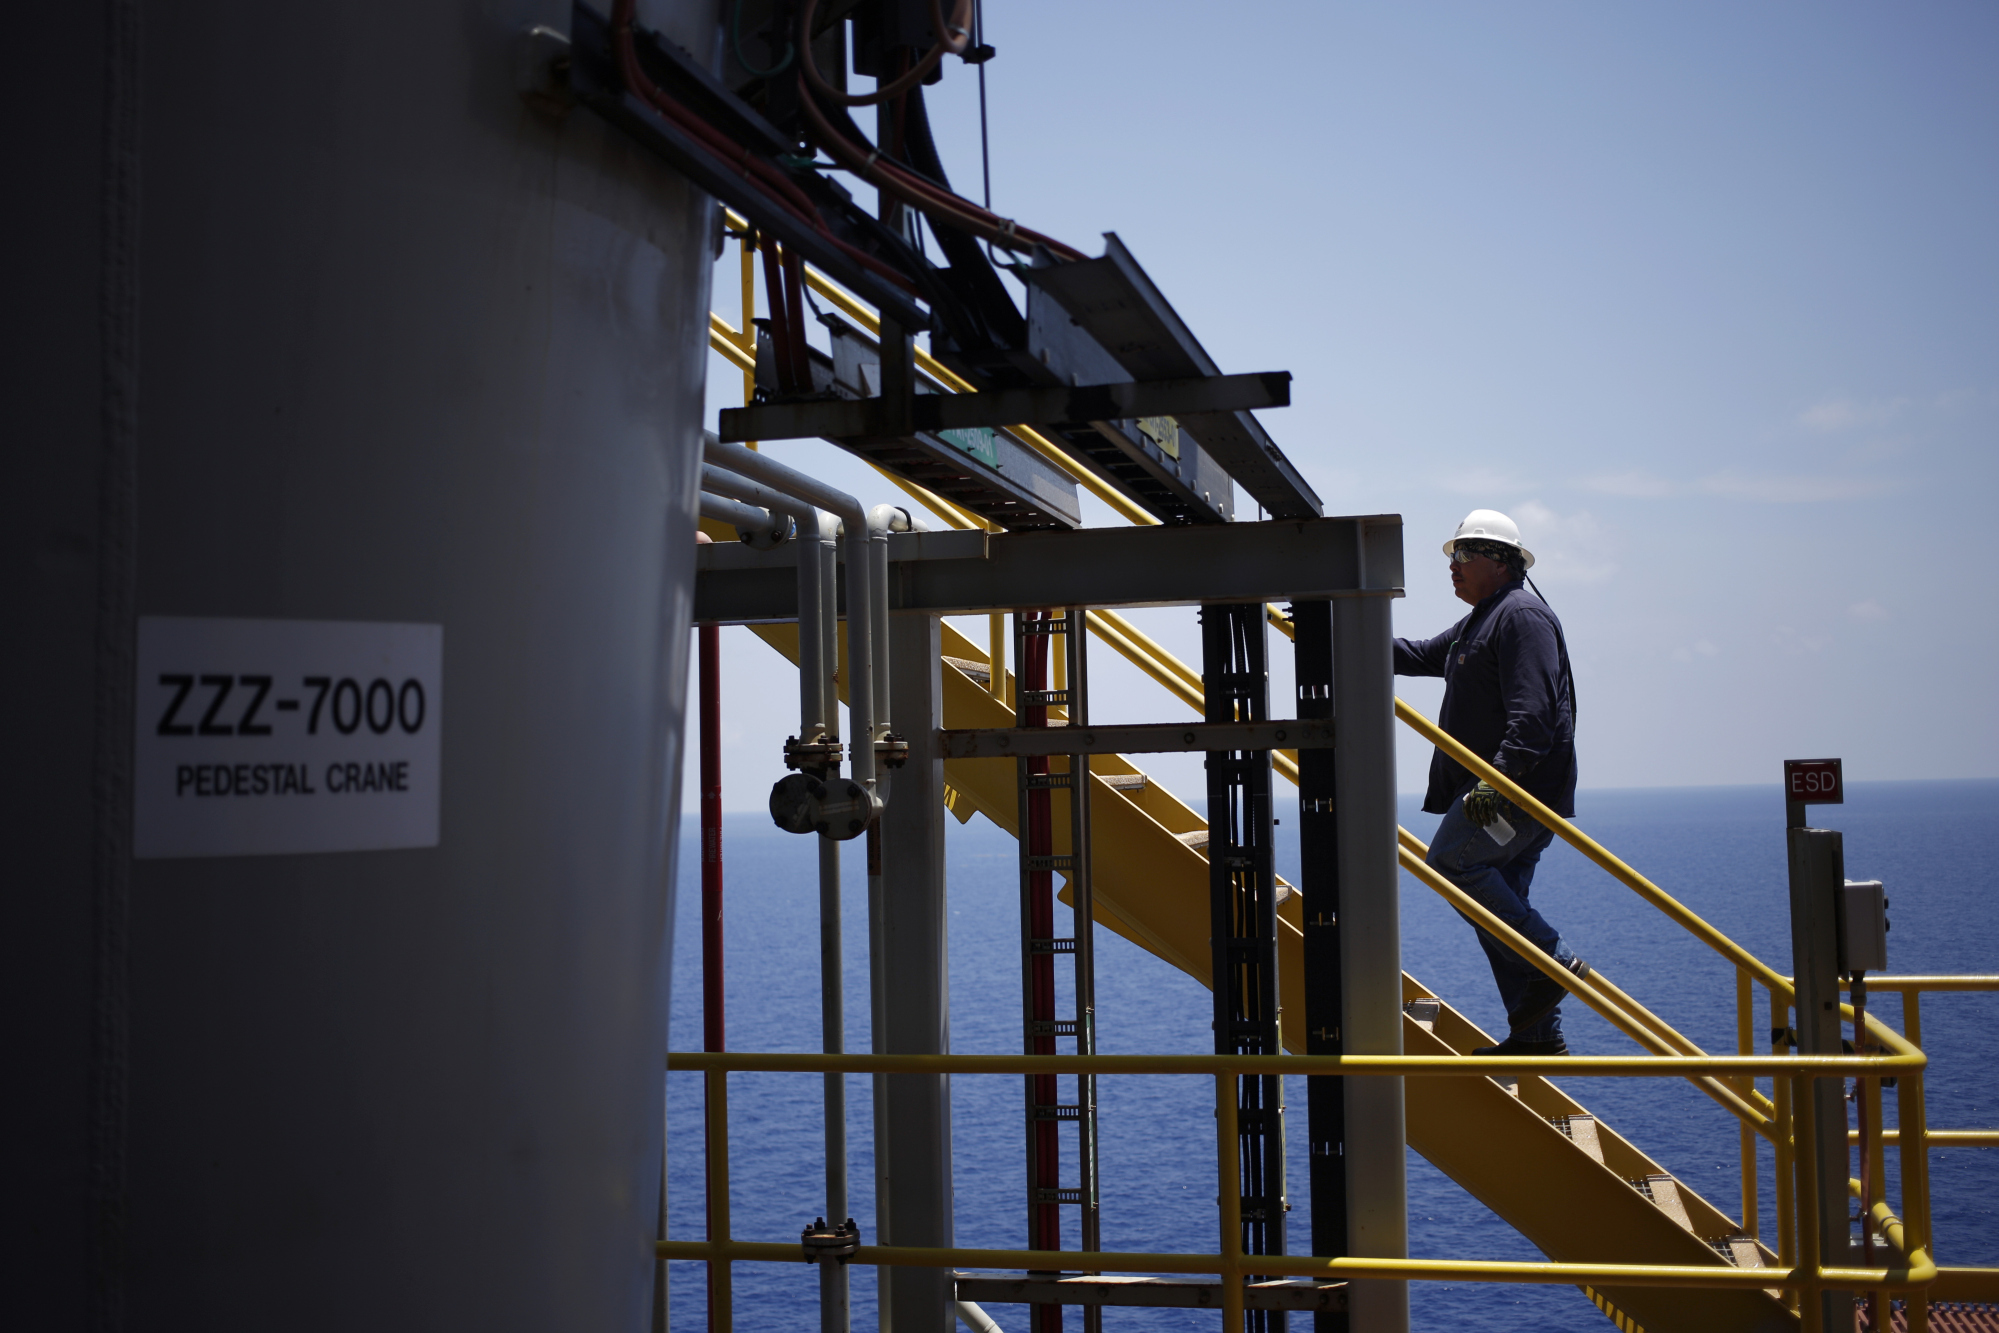 A offshore worker climbs a staircase aboard the Chevron Corp. Jack/St. Malo deepwater oil platform in the Gulf of Mexico off the coast of Louisiana, U.S., on Friday, May 18, 2018. While U.S. shale production has been dominating markets, a quiet revolution has been taking place offshore. The combination of new technology and smarter design will end much of the overspending that's made large troves of subsea oil barely profitable to produce, industry executives say. Photographer: Luke Sharrett/Bloomberg